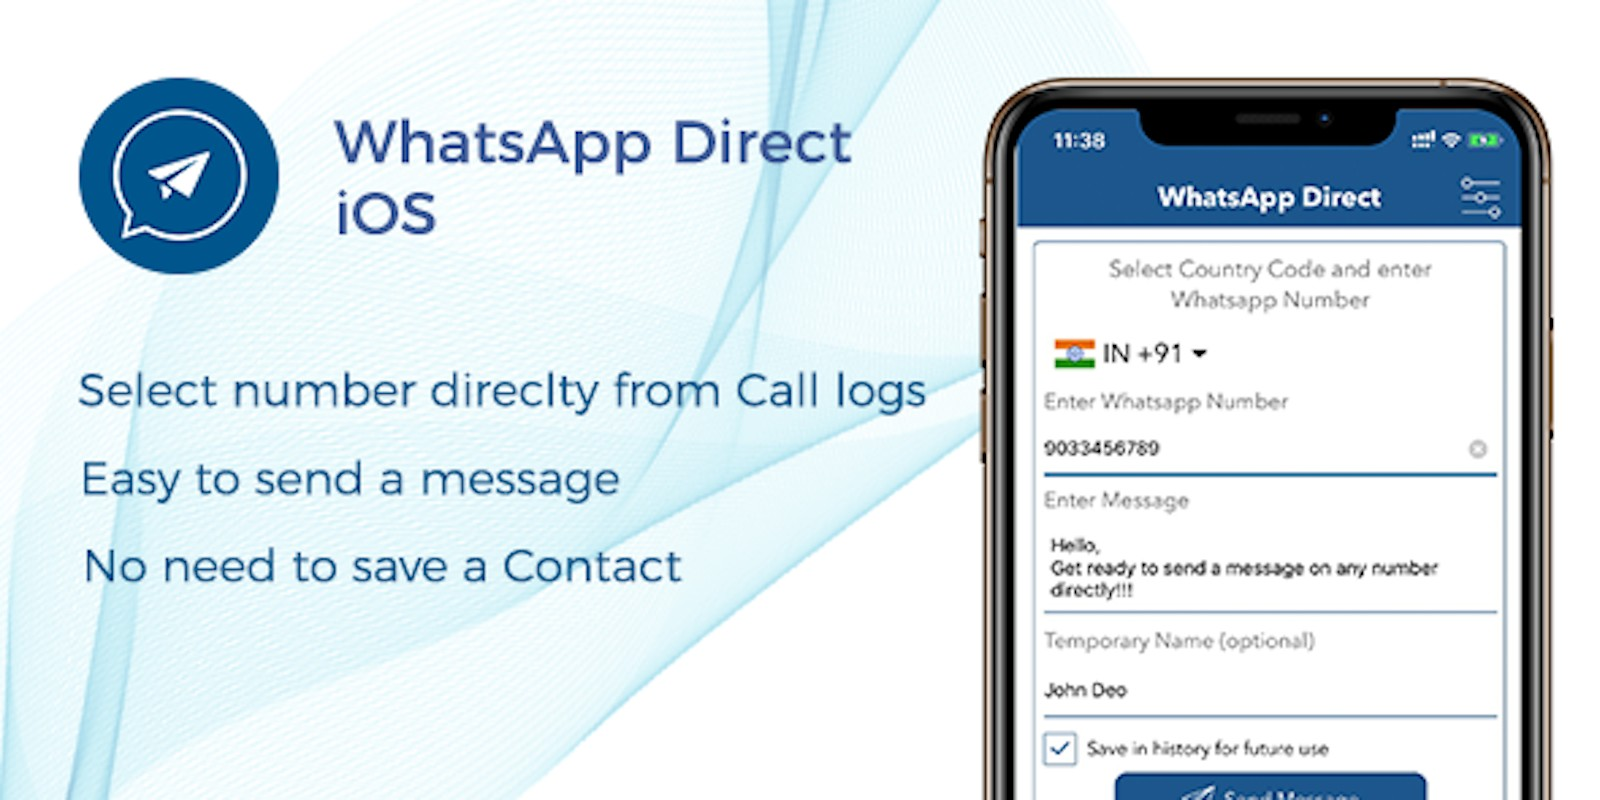 WhatsApp Direct - Send Message Without Contact iOS